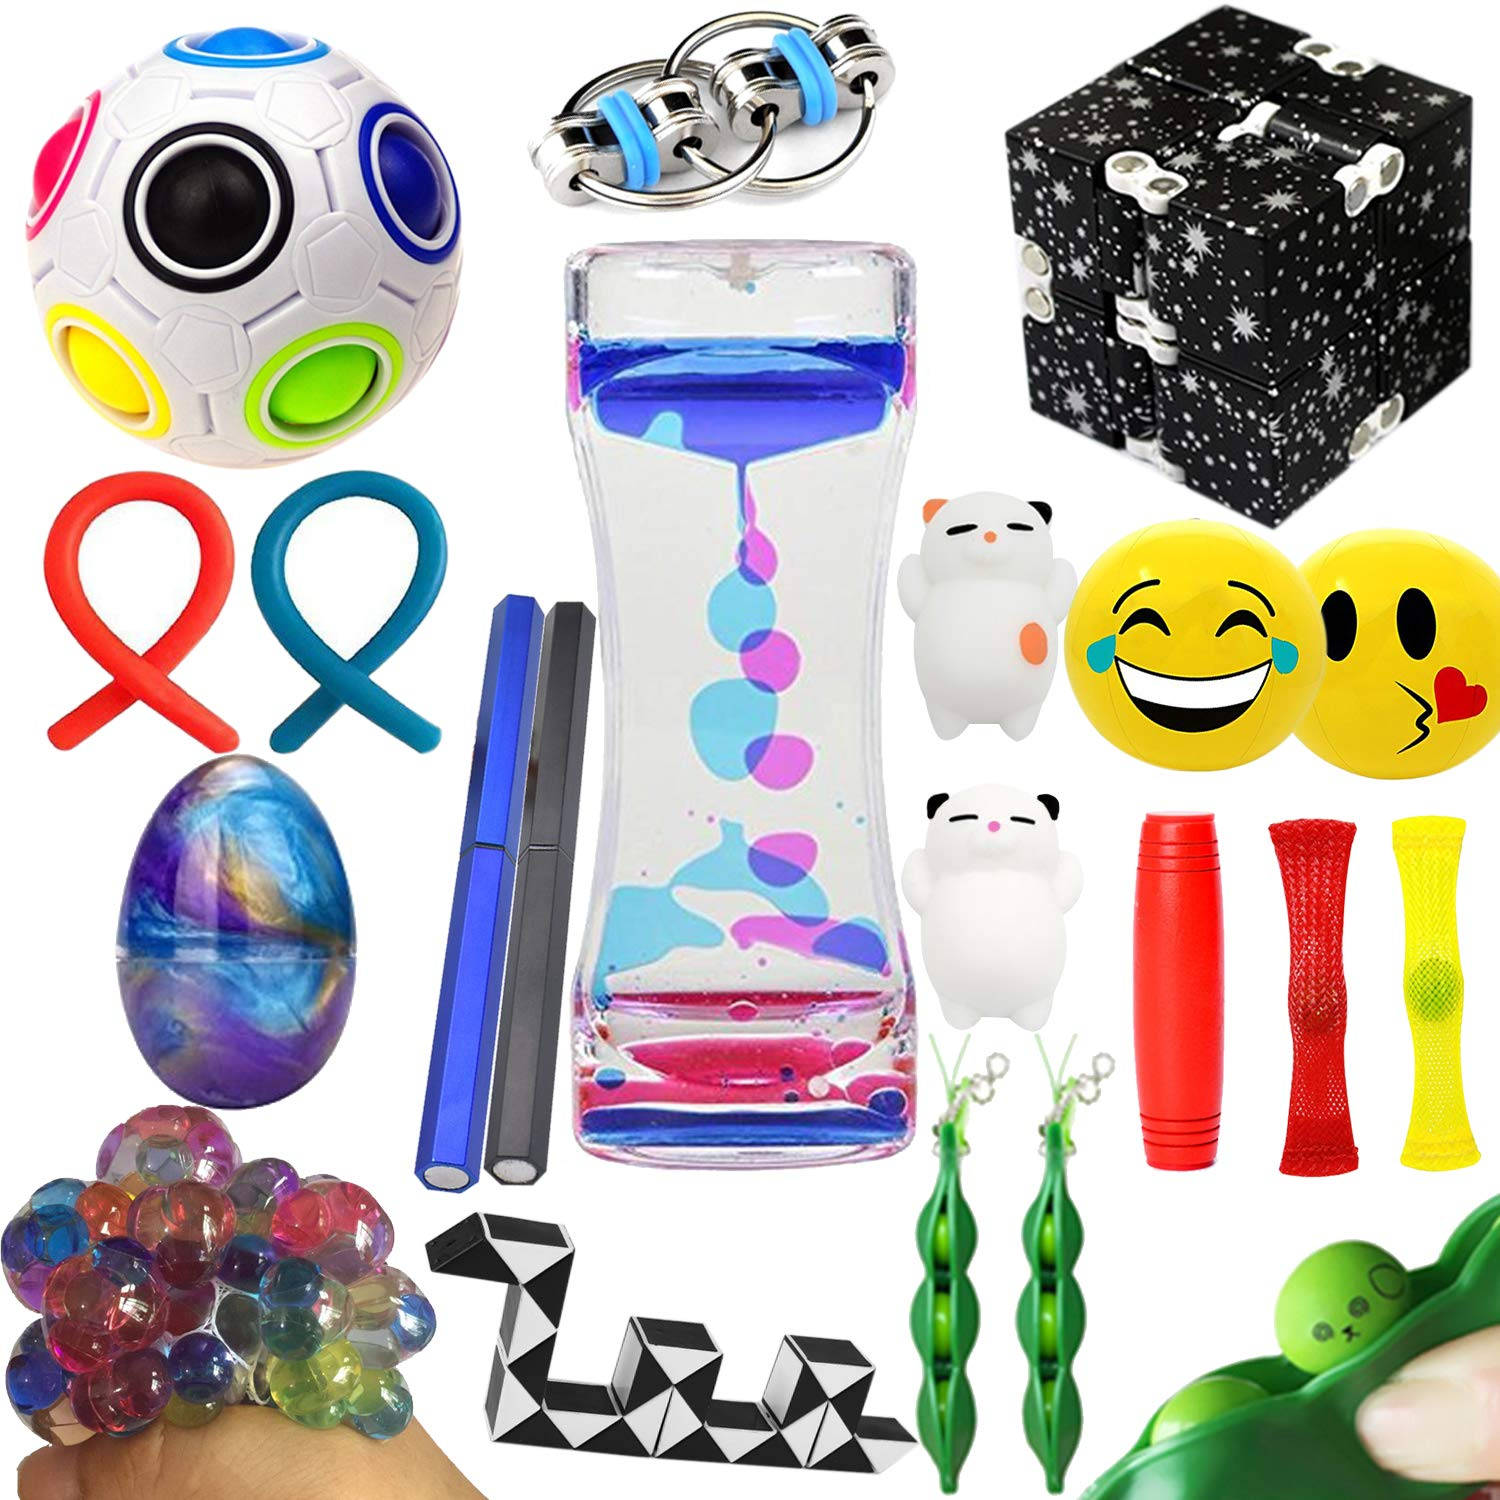 The Ultimate Sensory Fidget Toys Kit Prime 20 Packs Fidget Cube/Slime/Infinity Cube/Twisted Toy/Liquid Motion Bubbler/Squeeze Bean/Rainbow Magic Balls for Kids&Adult Add ADHD Stress Relax by Leeche